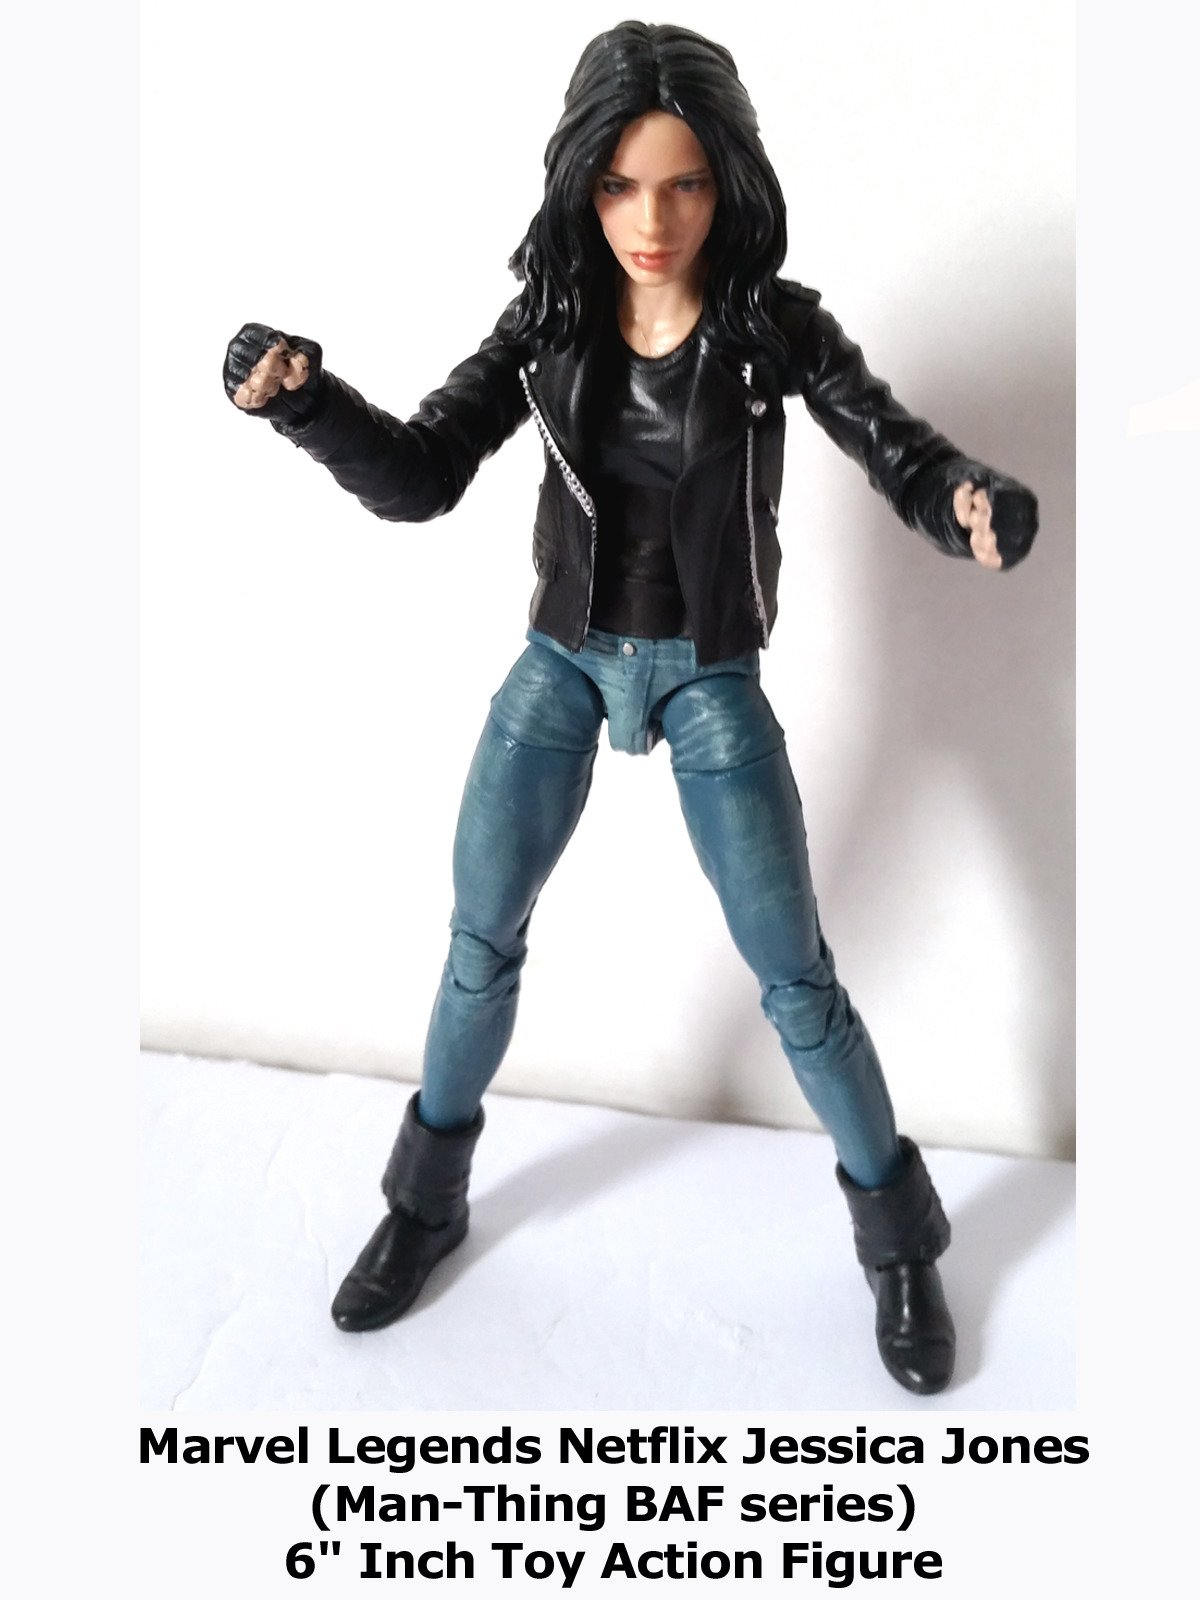 "Review: Marvel Legends Netflix Jessica Jones (Man-Thing BAF series) 6"" Inch Toy Action Figure"